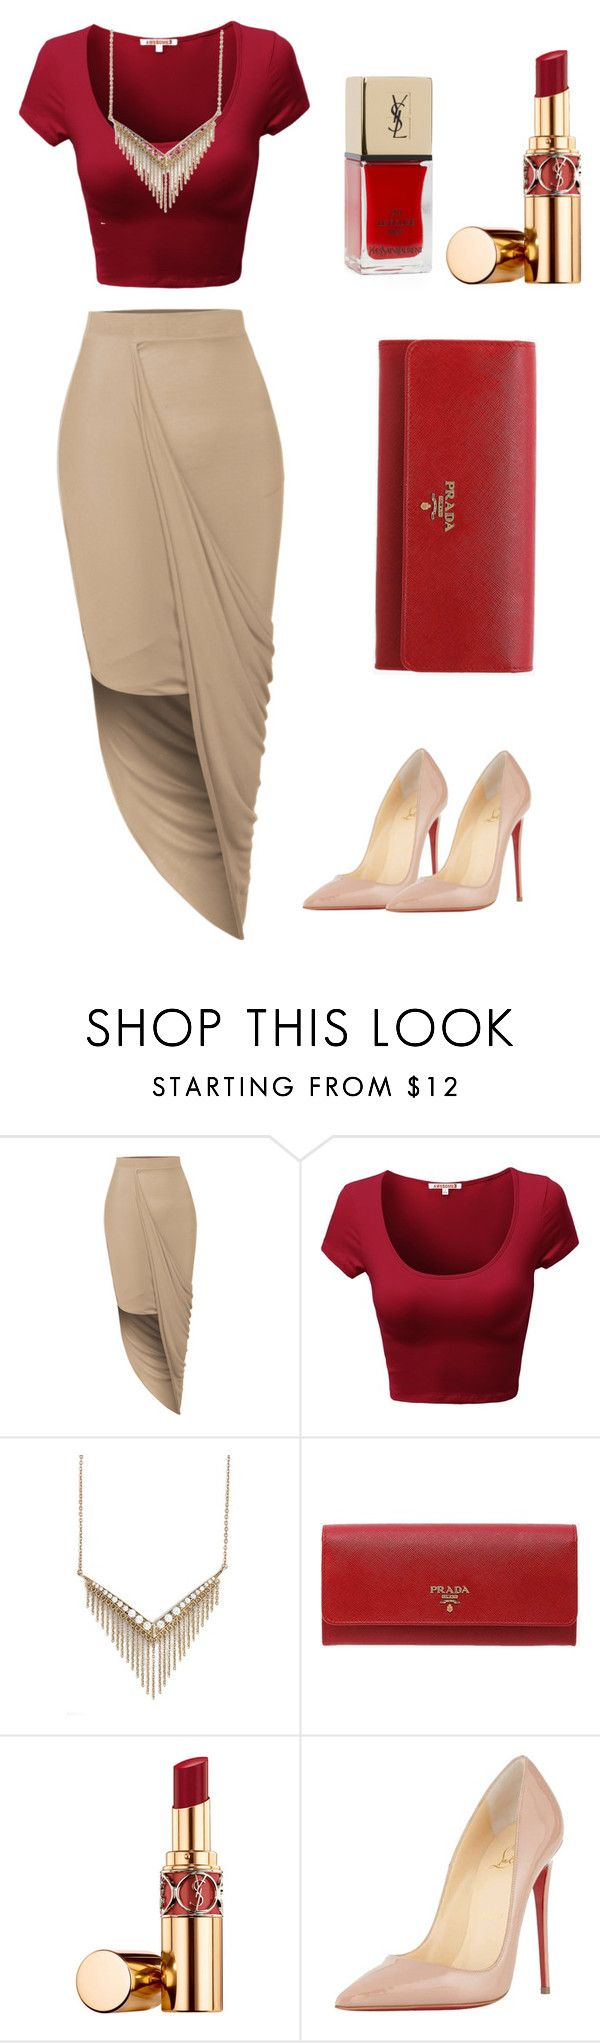 """""""Untitled #5"""" by sylver-fang on Polyvore featuring LE3NO, Melinda Maria, Prada, Yves Saint Laurent, Christian Louboutin, Lord & Taylor, women's clothing, women, female and woman"""